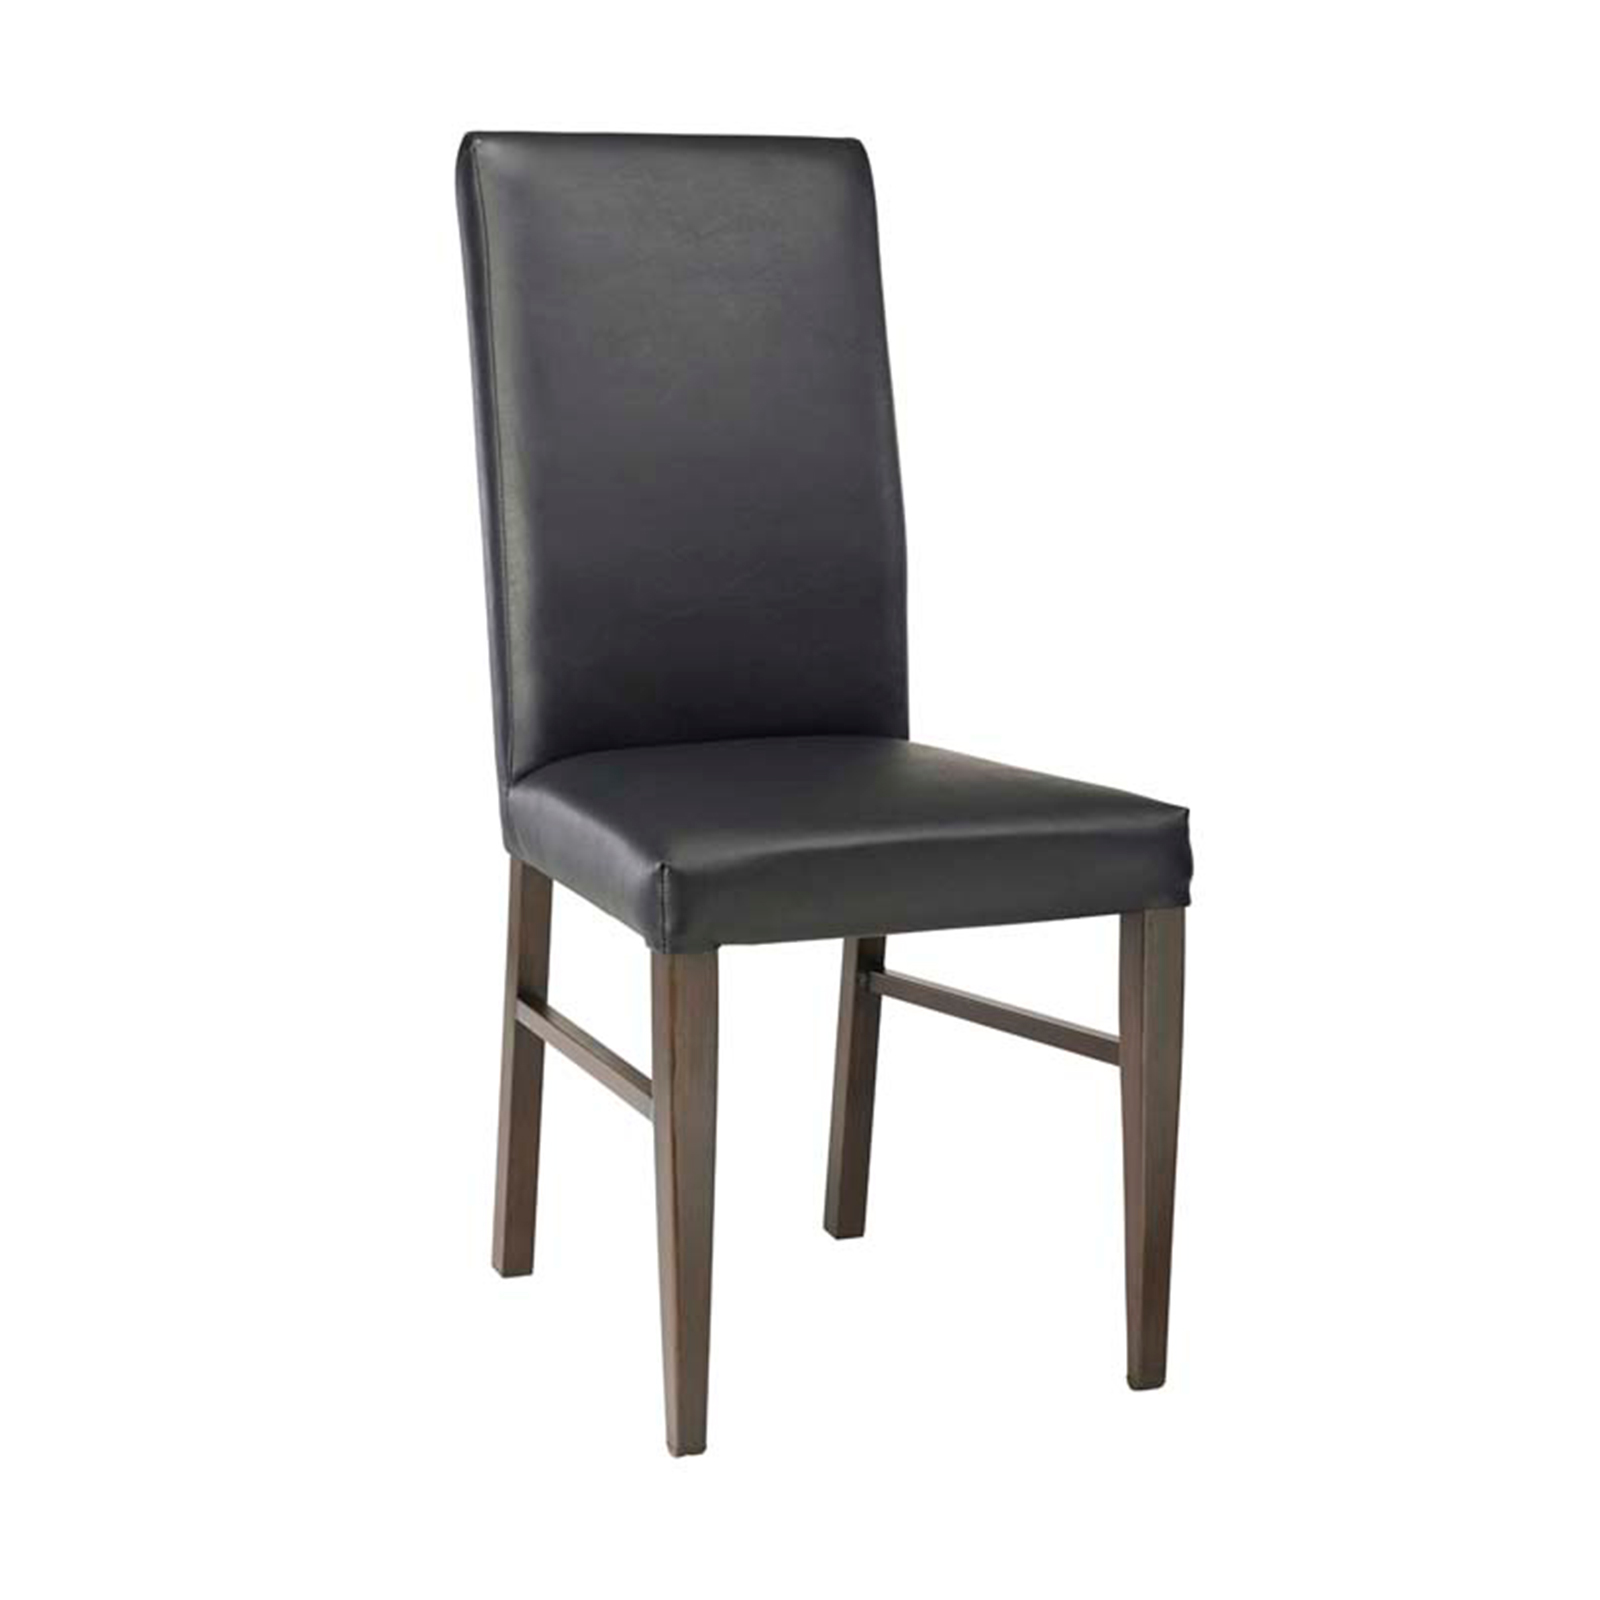 G & A Commercial Seating 506-B chair, side, indoor